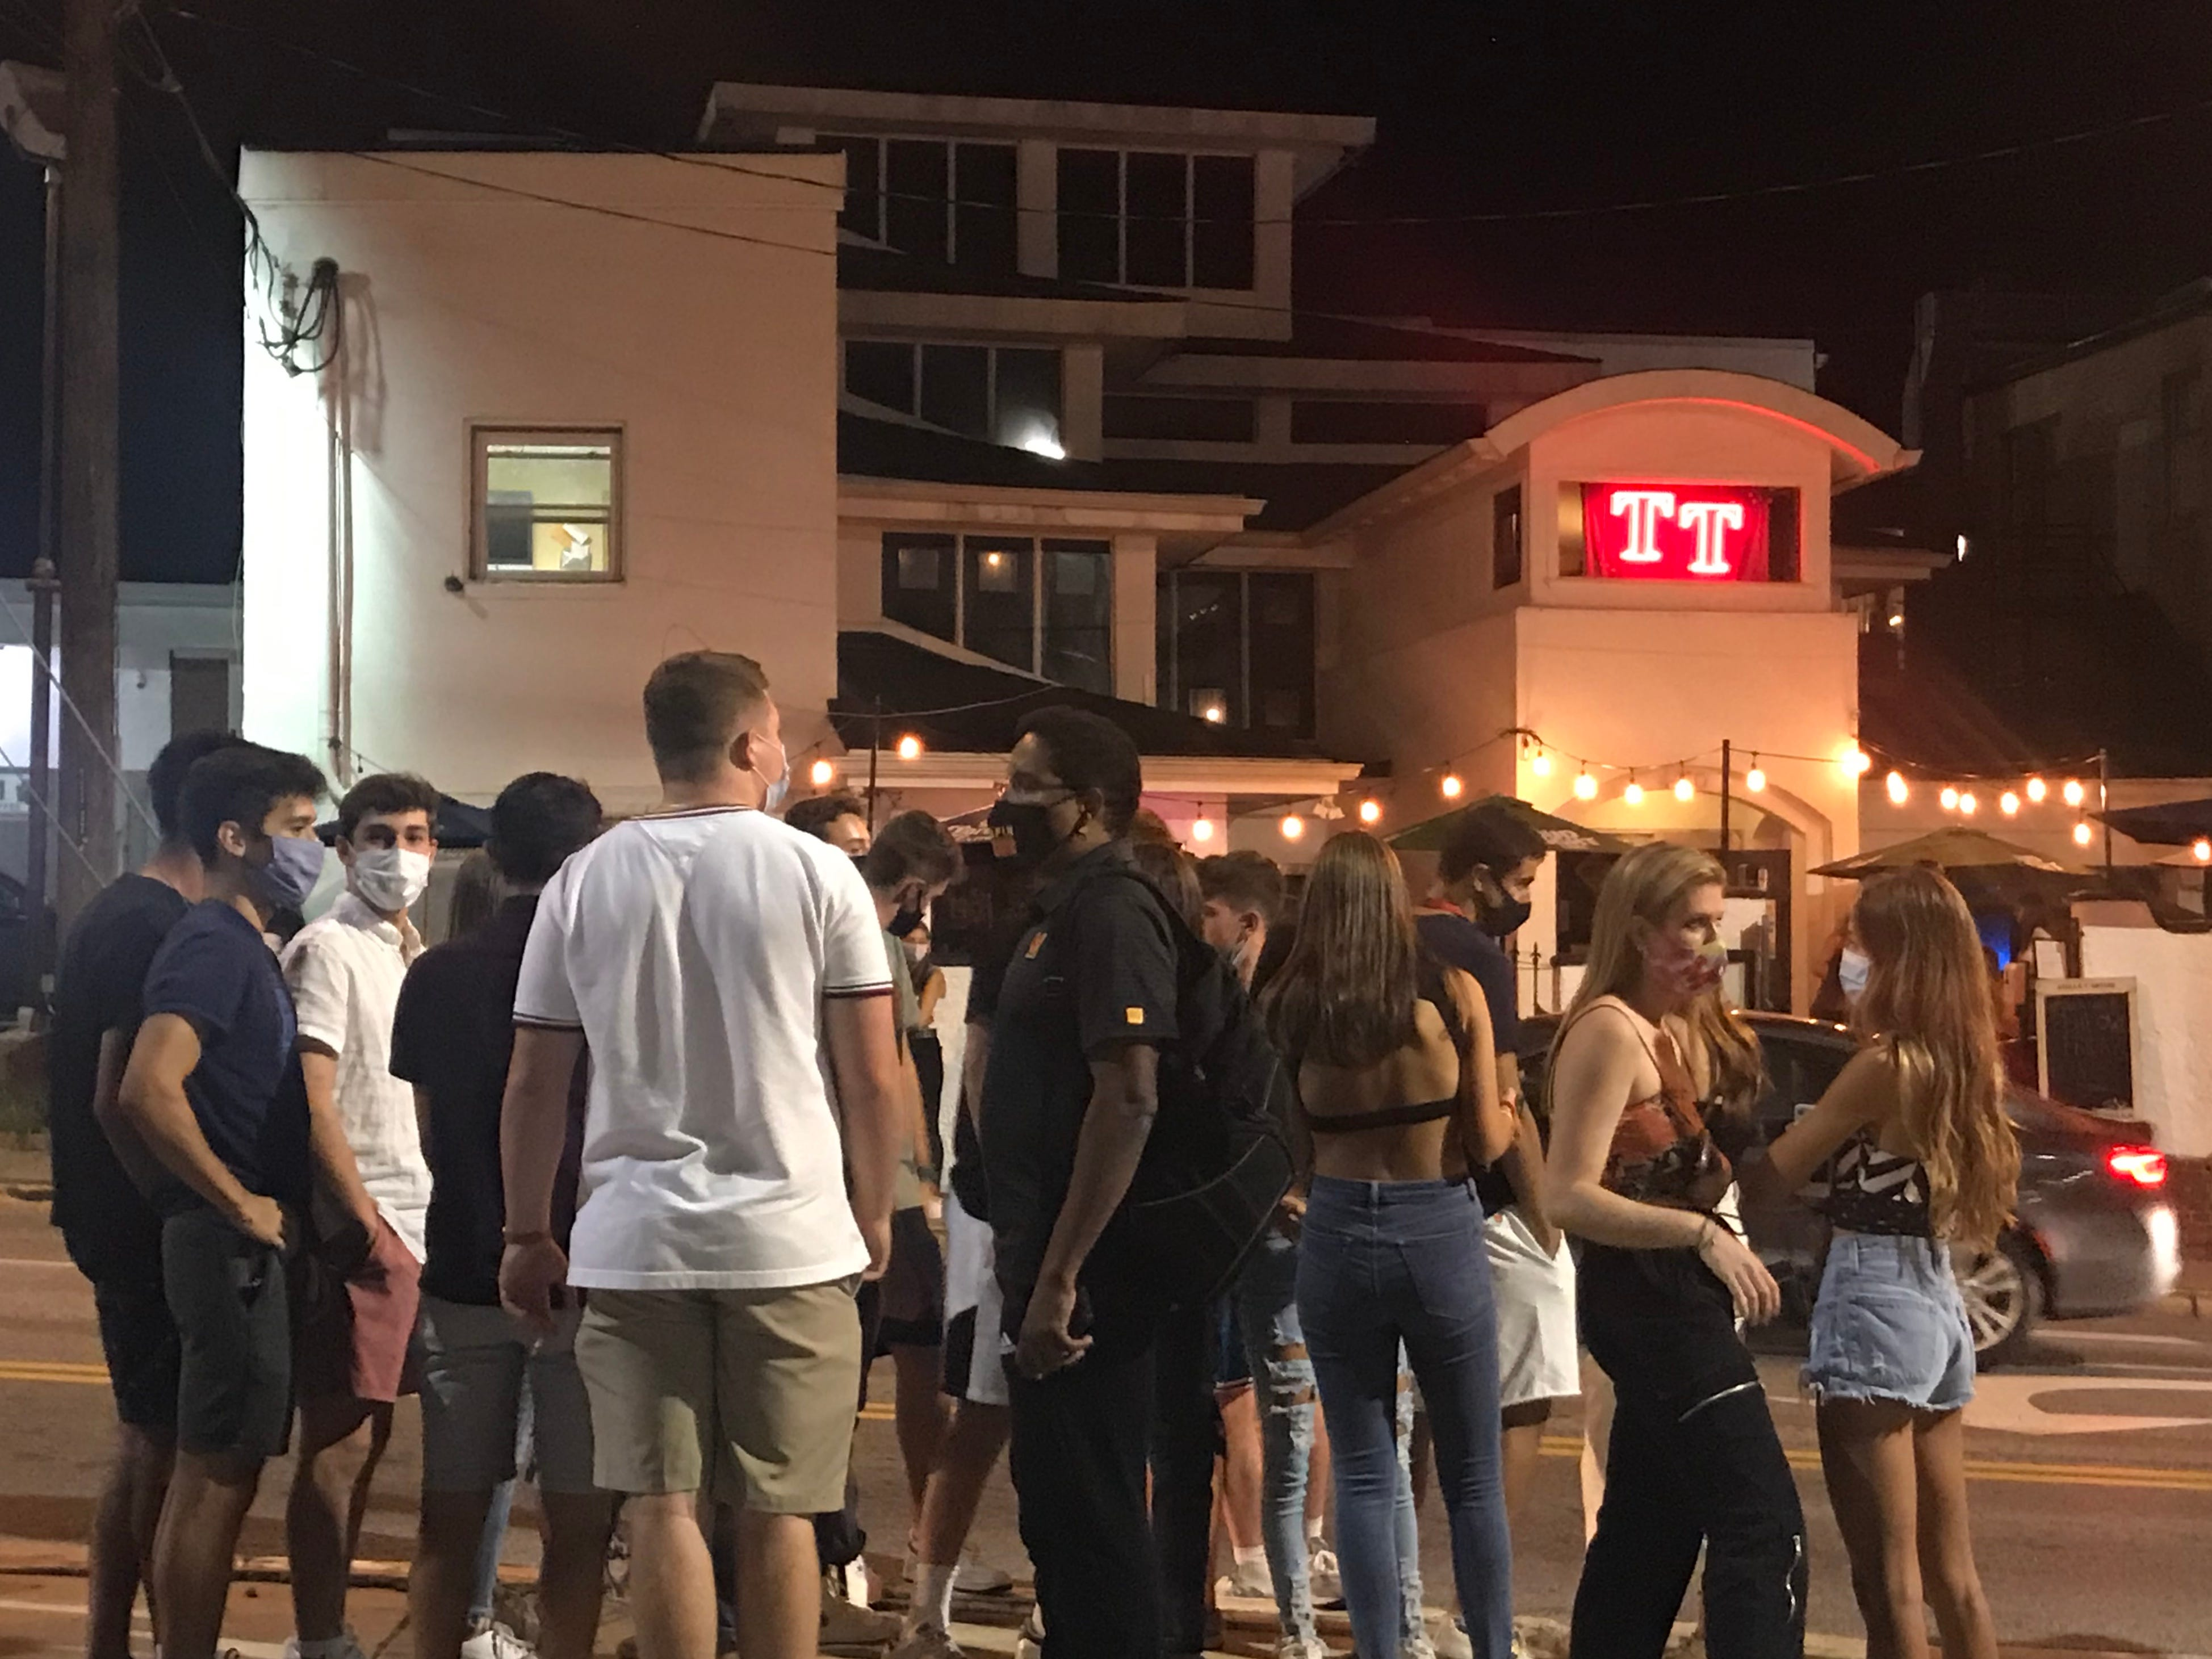 """""""Put your masks on!"""" a student called when University of Maryland President Darryll Pines, center, wearing black, stopped by a gathering near campus on Friday night."""